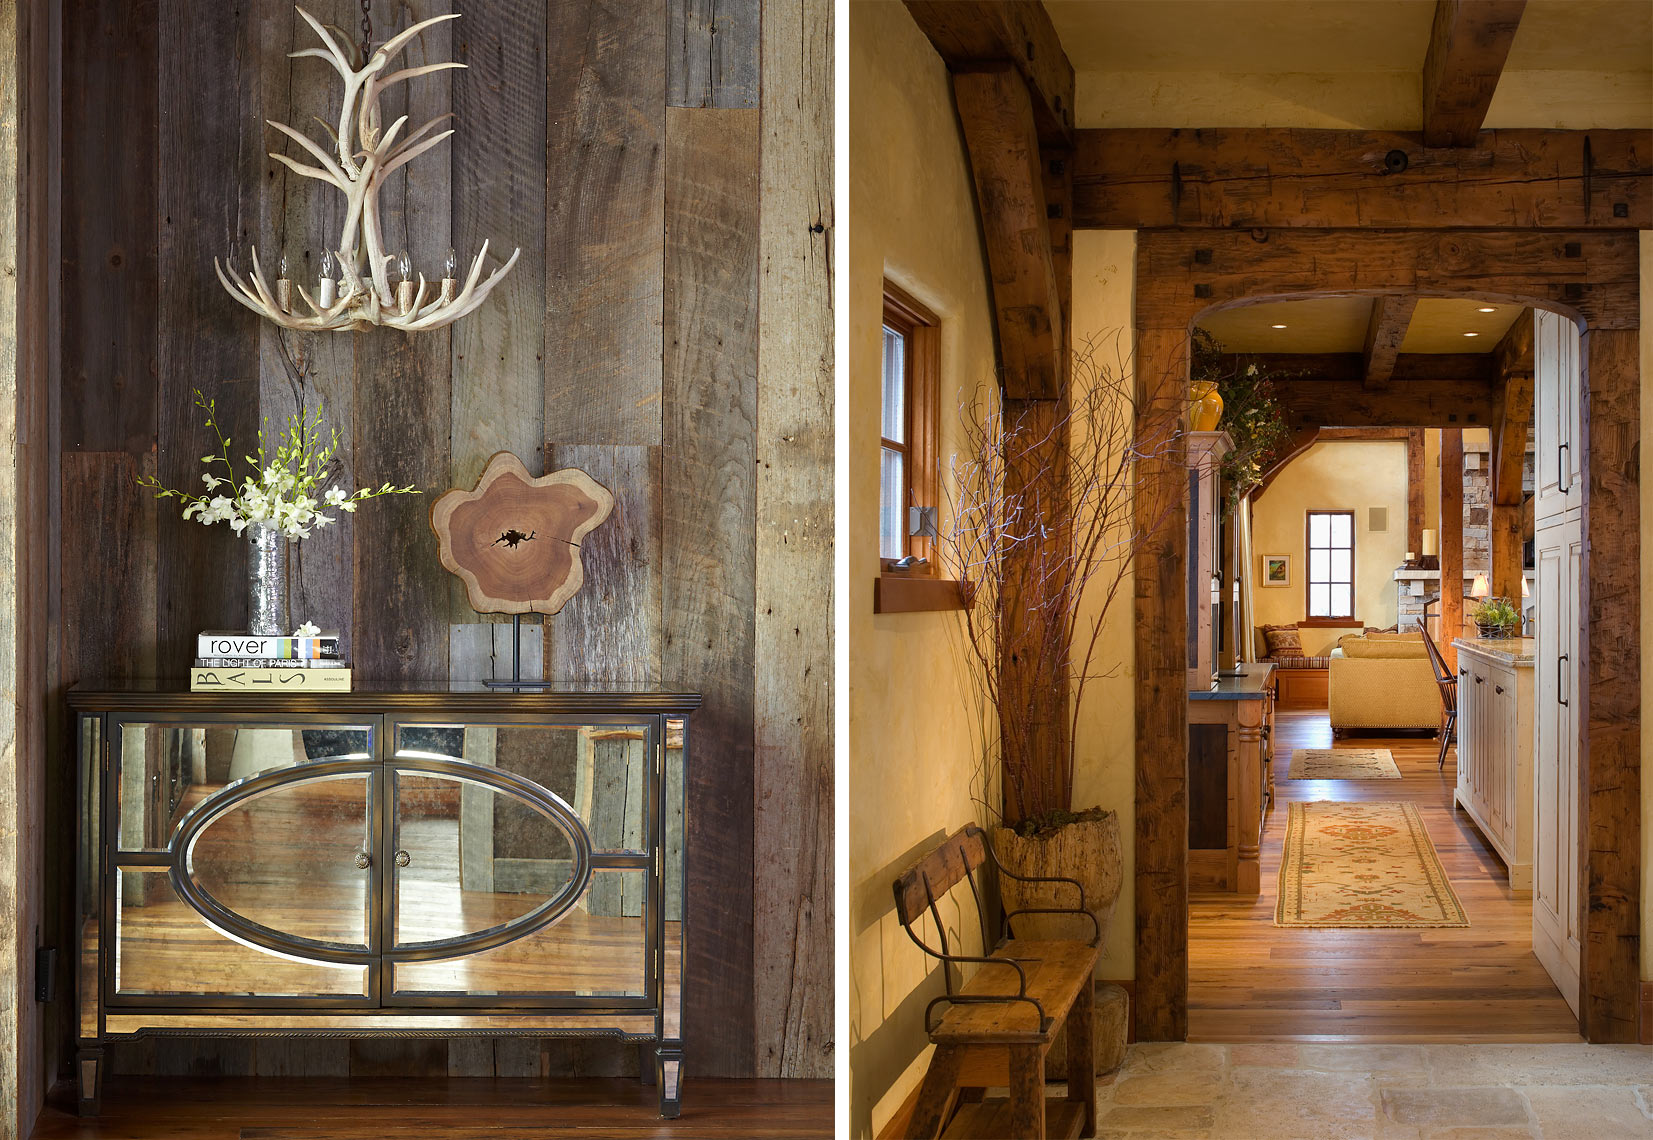 Rustic Western Design, David Patterson Photographer of Architecture + Interiors, Denver, Colorado, Steamboat Springs, Vail, Aspen